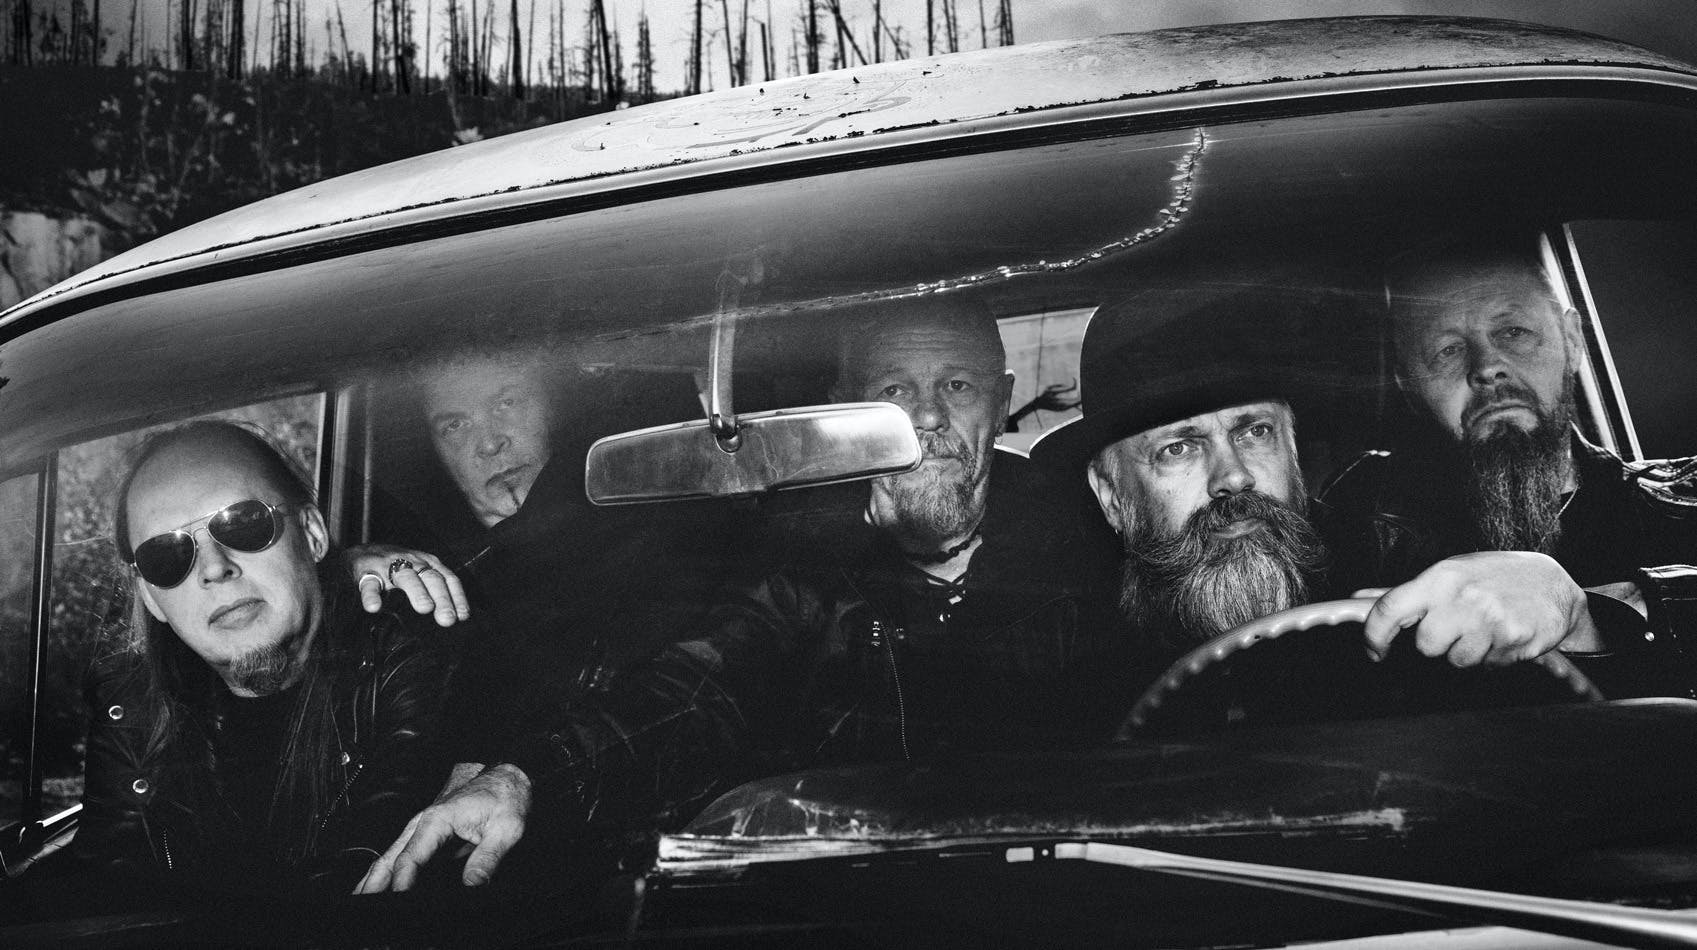 Exclusive Stream: The New Candlemass Album Cements Their Epic Doom Metal Legacy